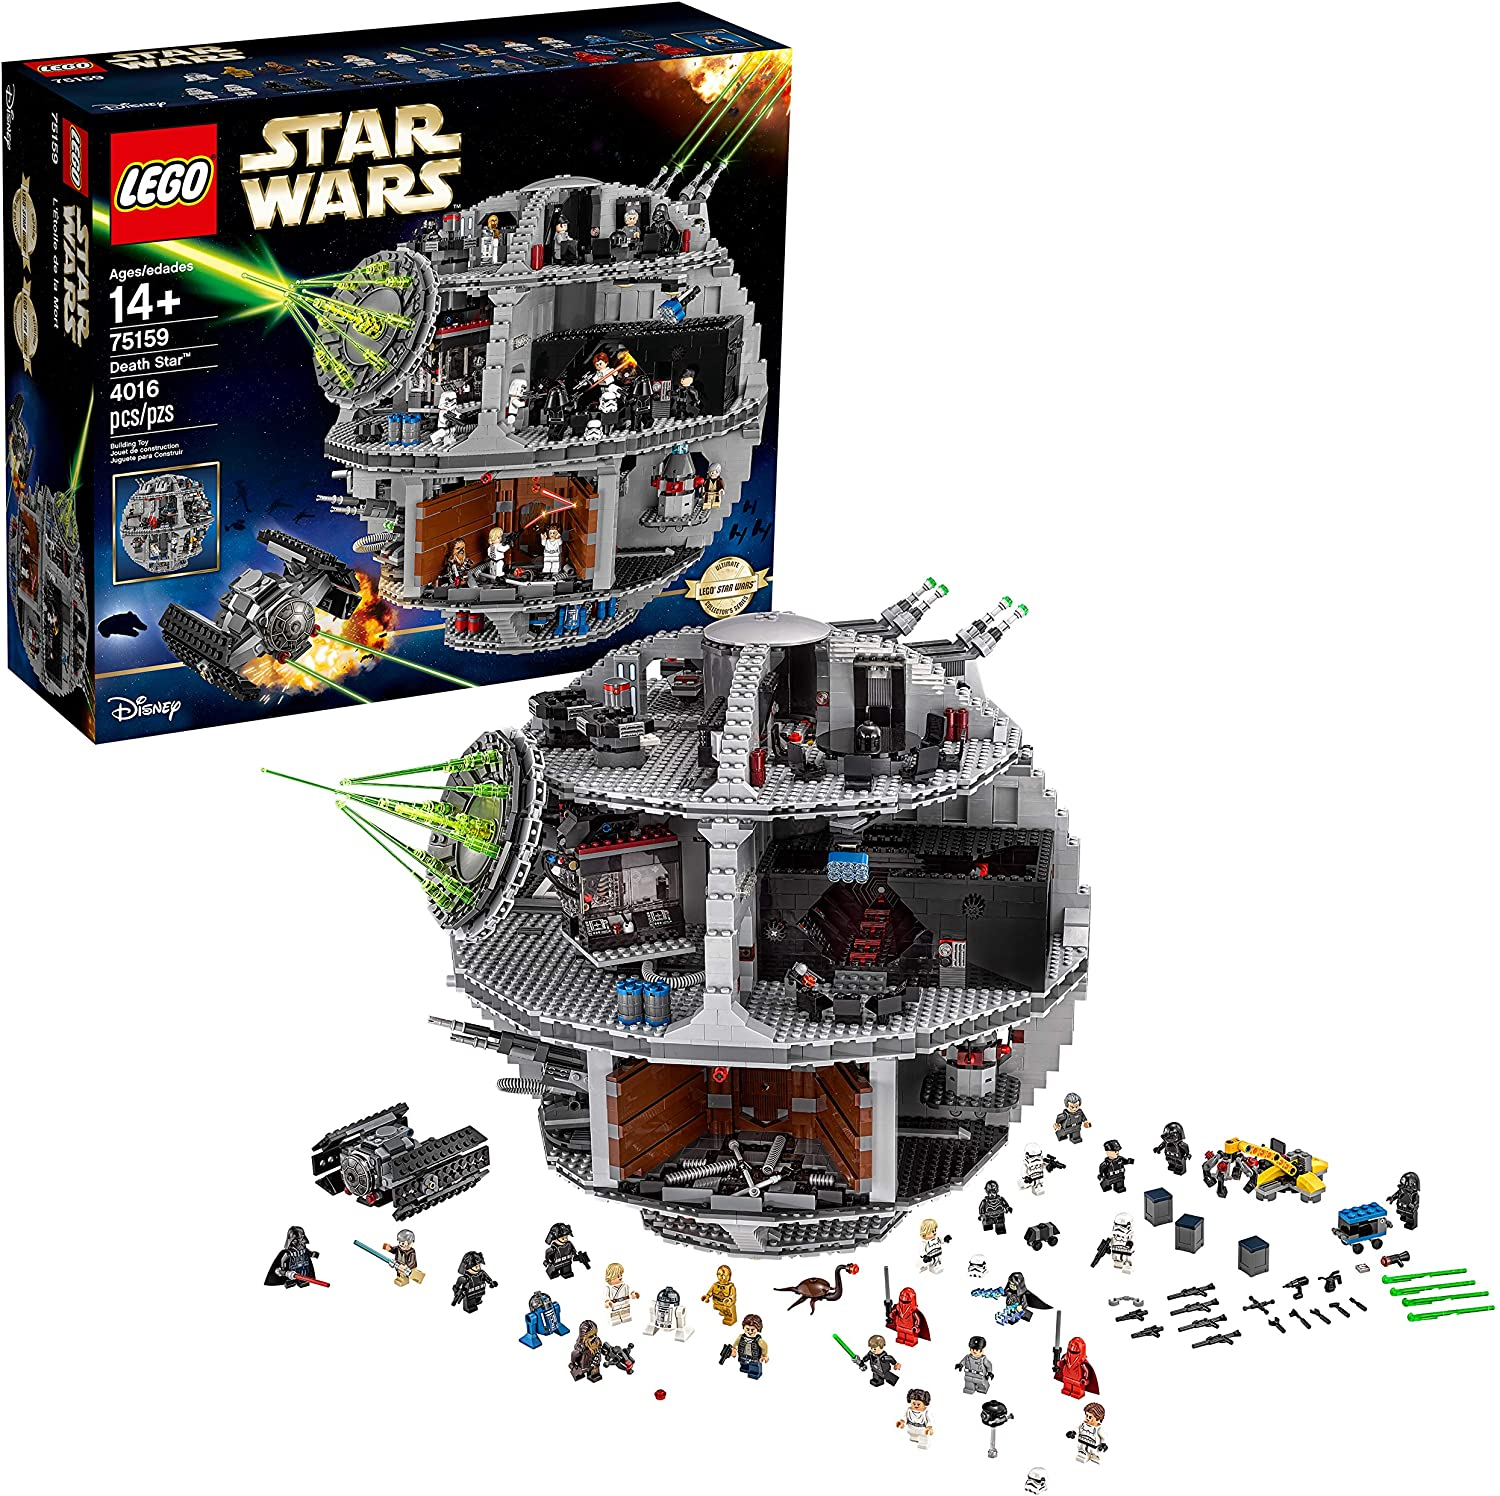 Death Star Space Station